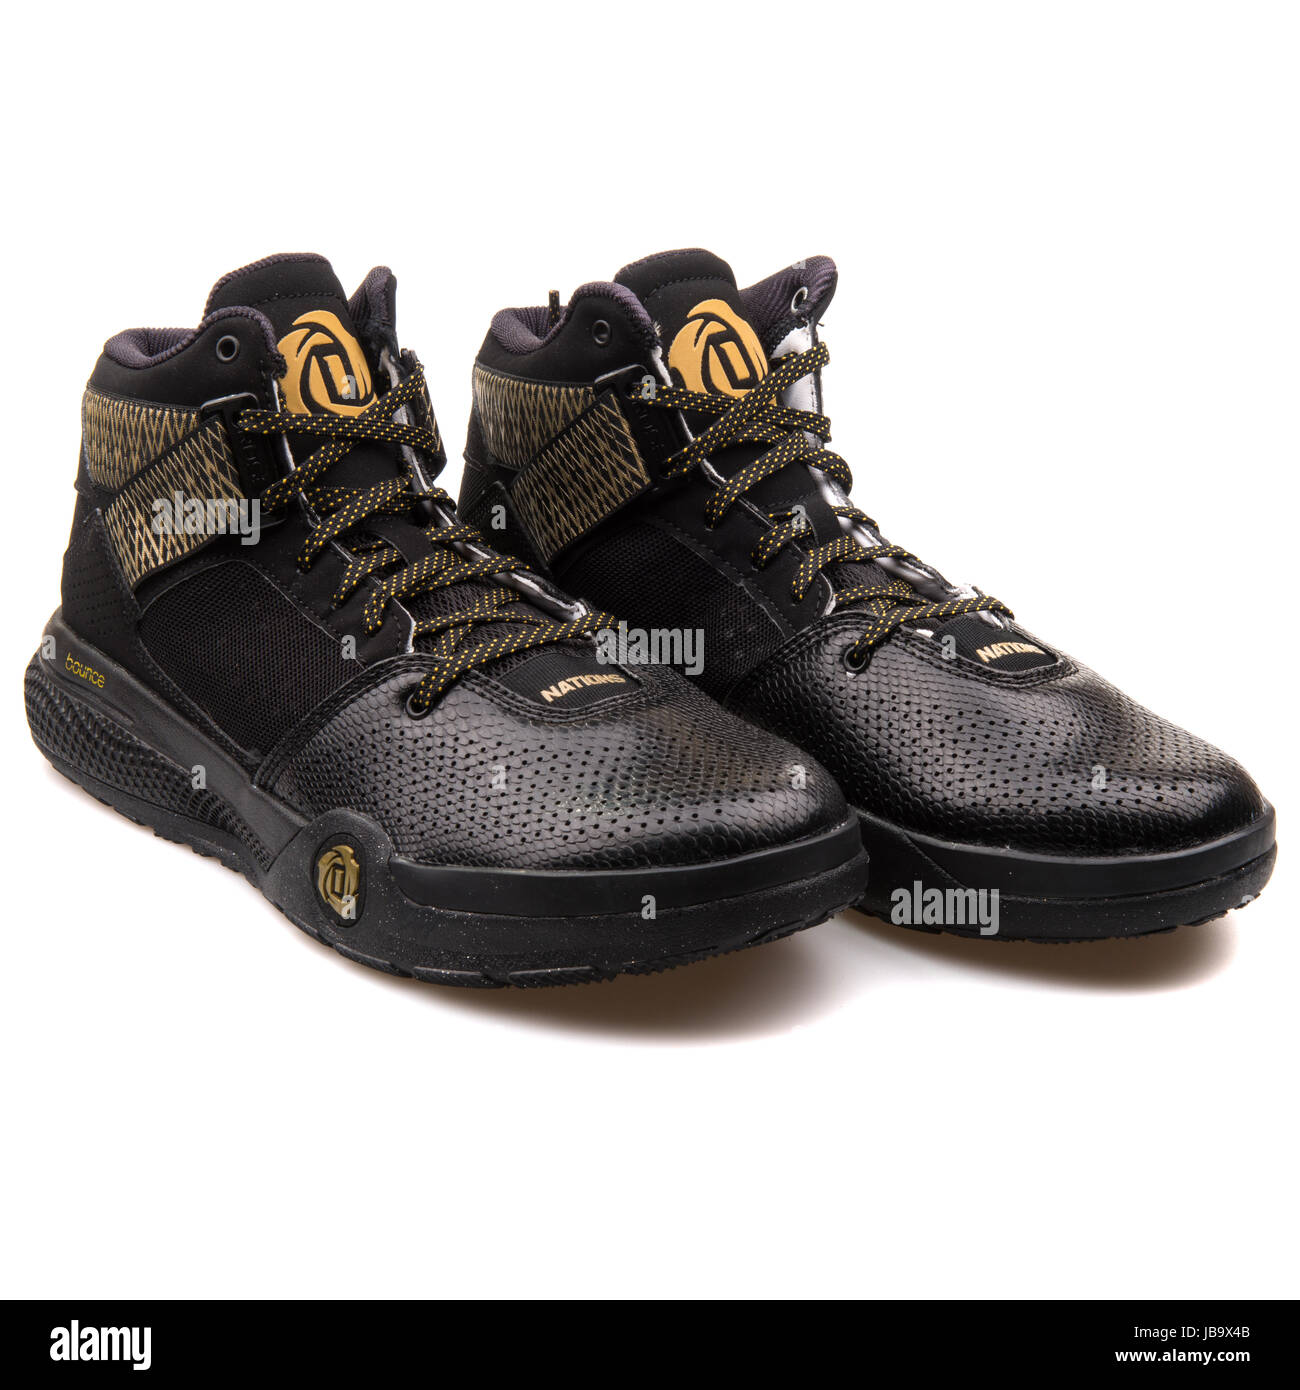 caacfe5b3 ... cheap adidas d rose 773 iv black and gold mens basketball shoes d69592  62739 1369a